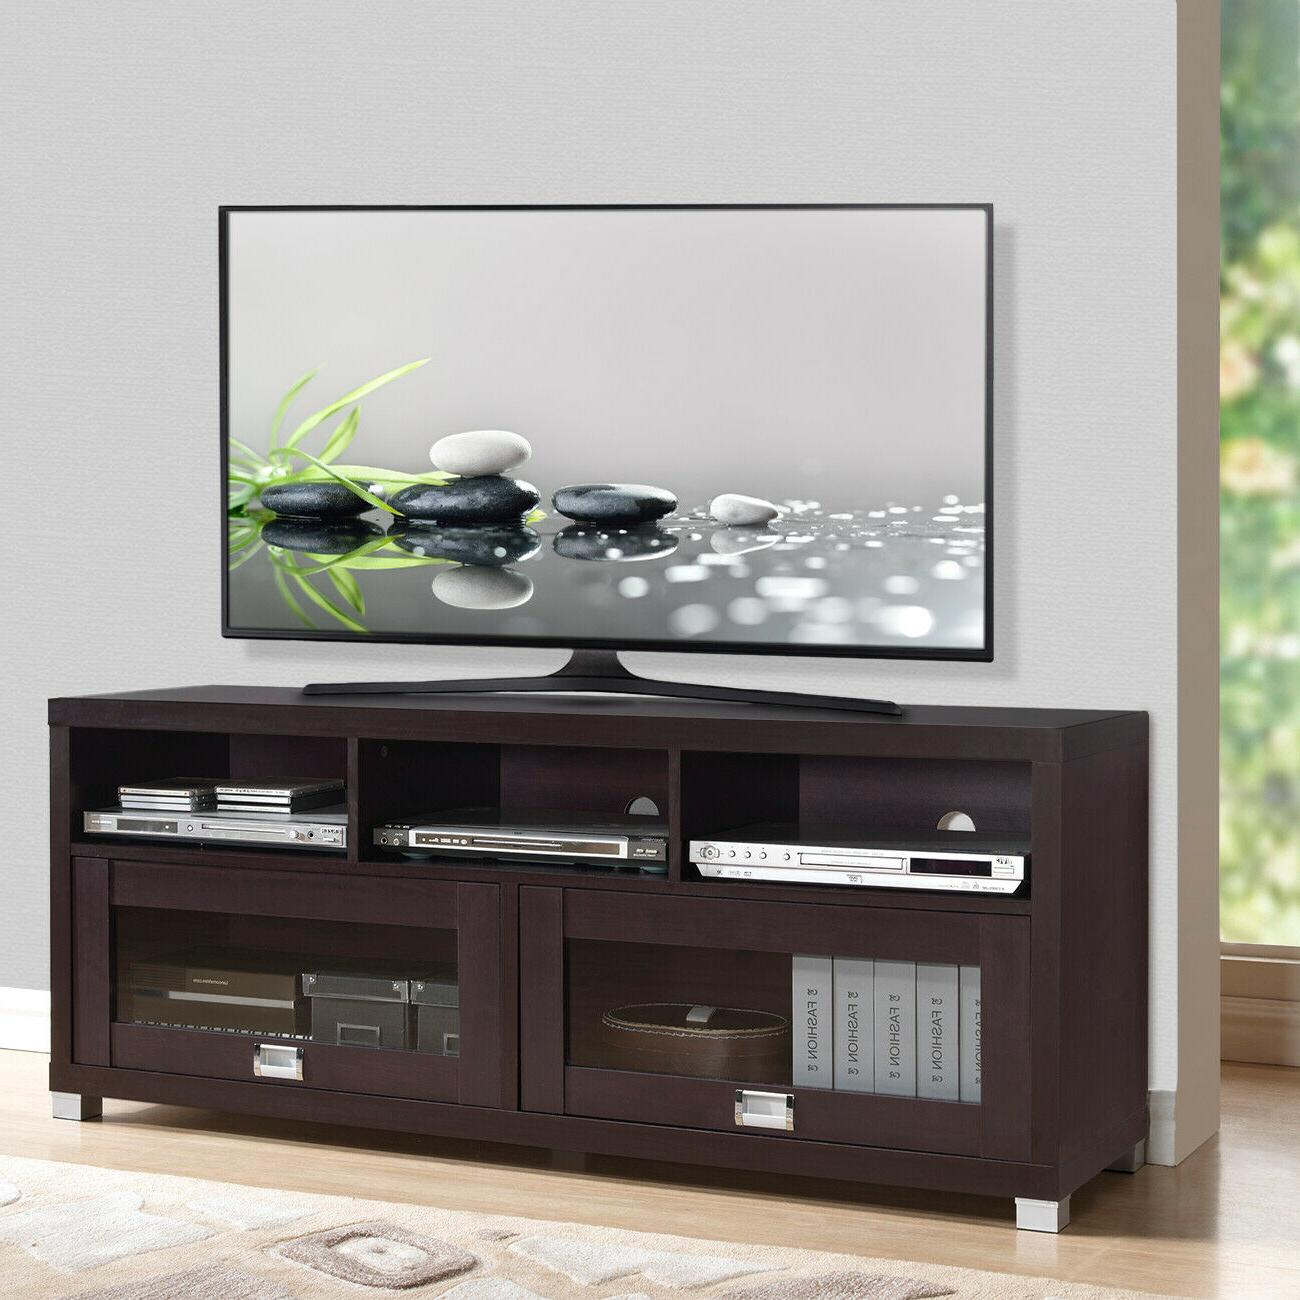 75 INCH TV STAND Center Console Cabinet Flat Screen Home Med